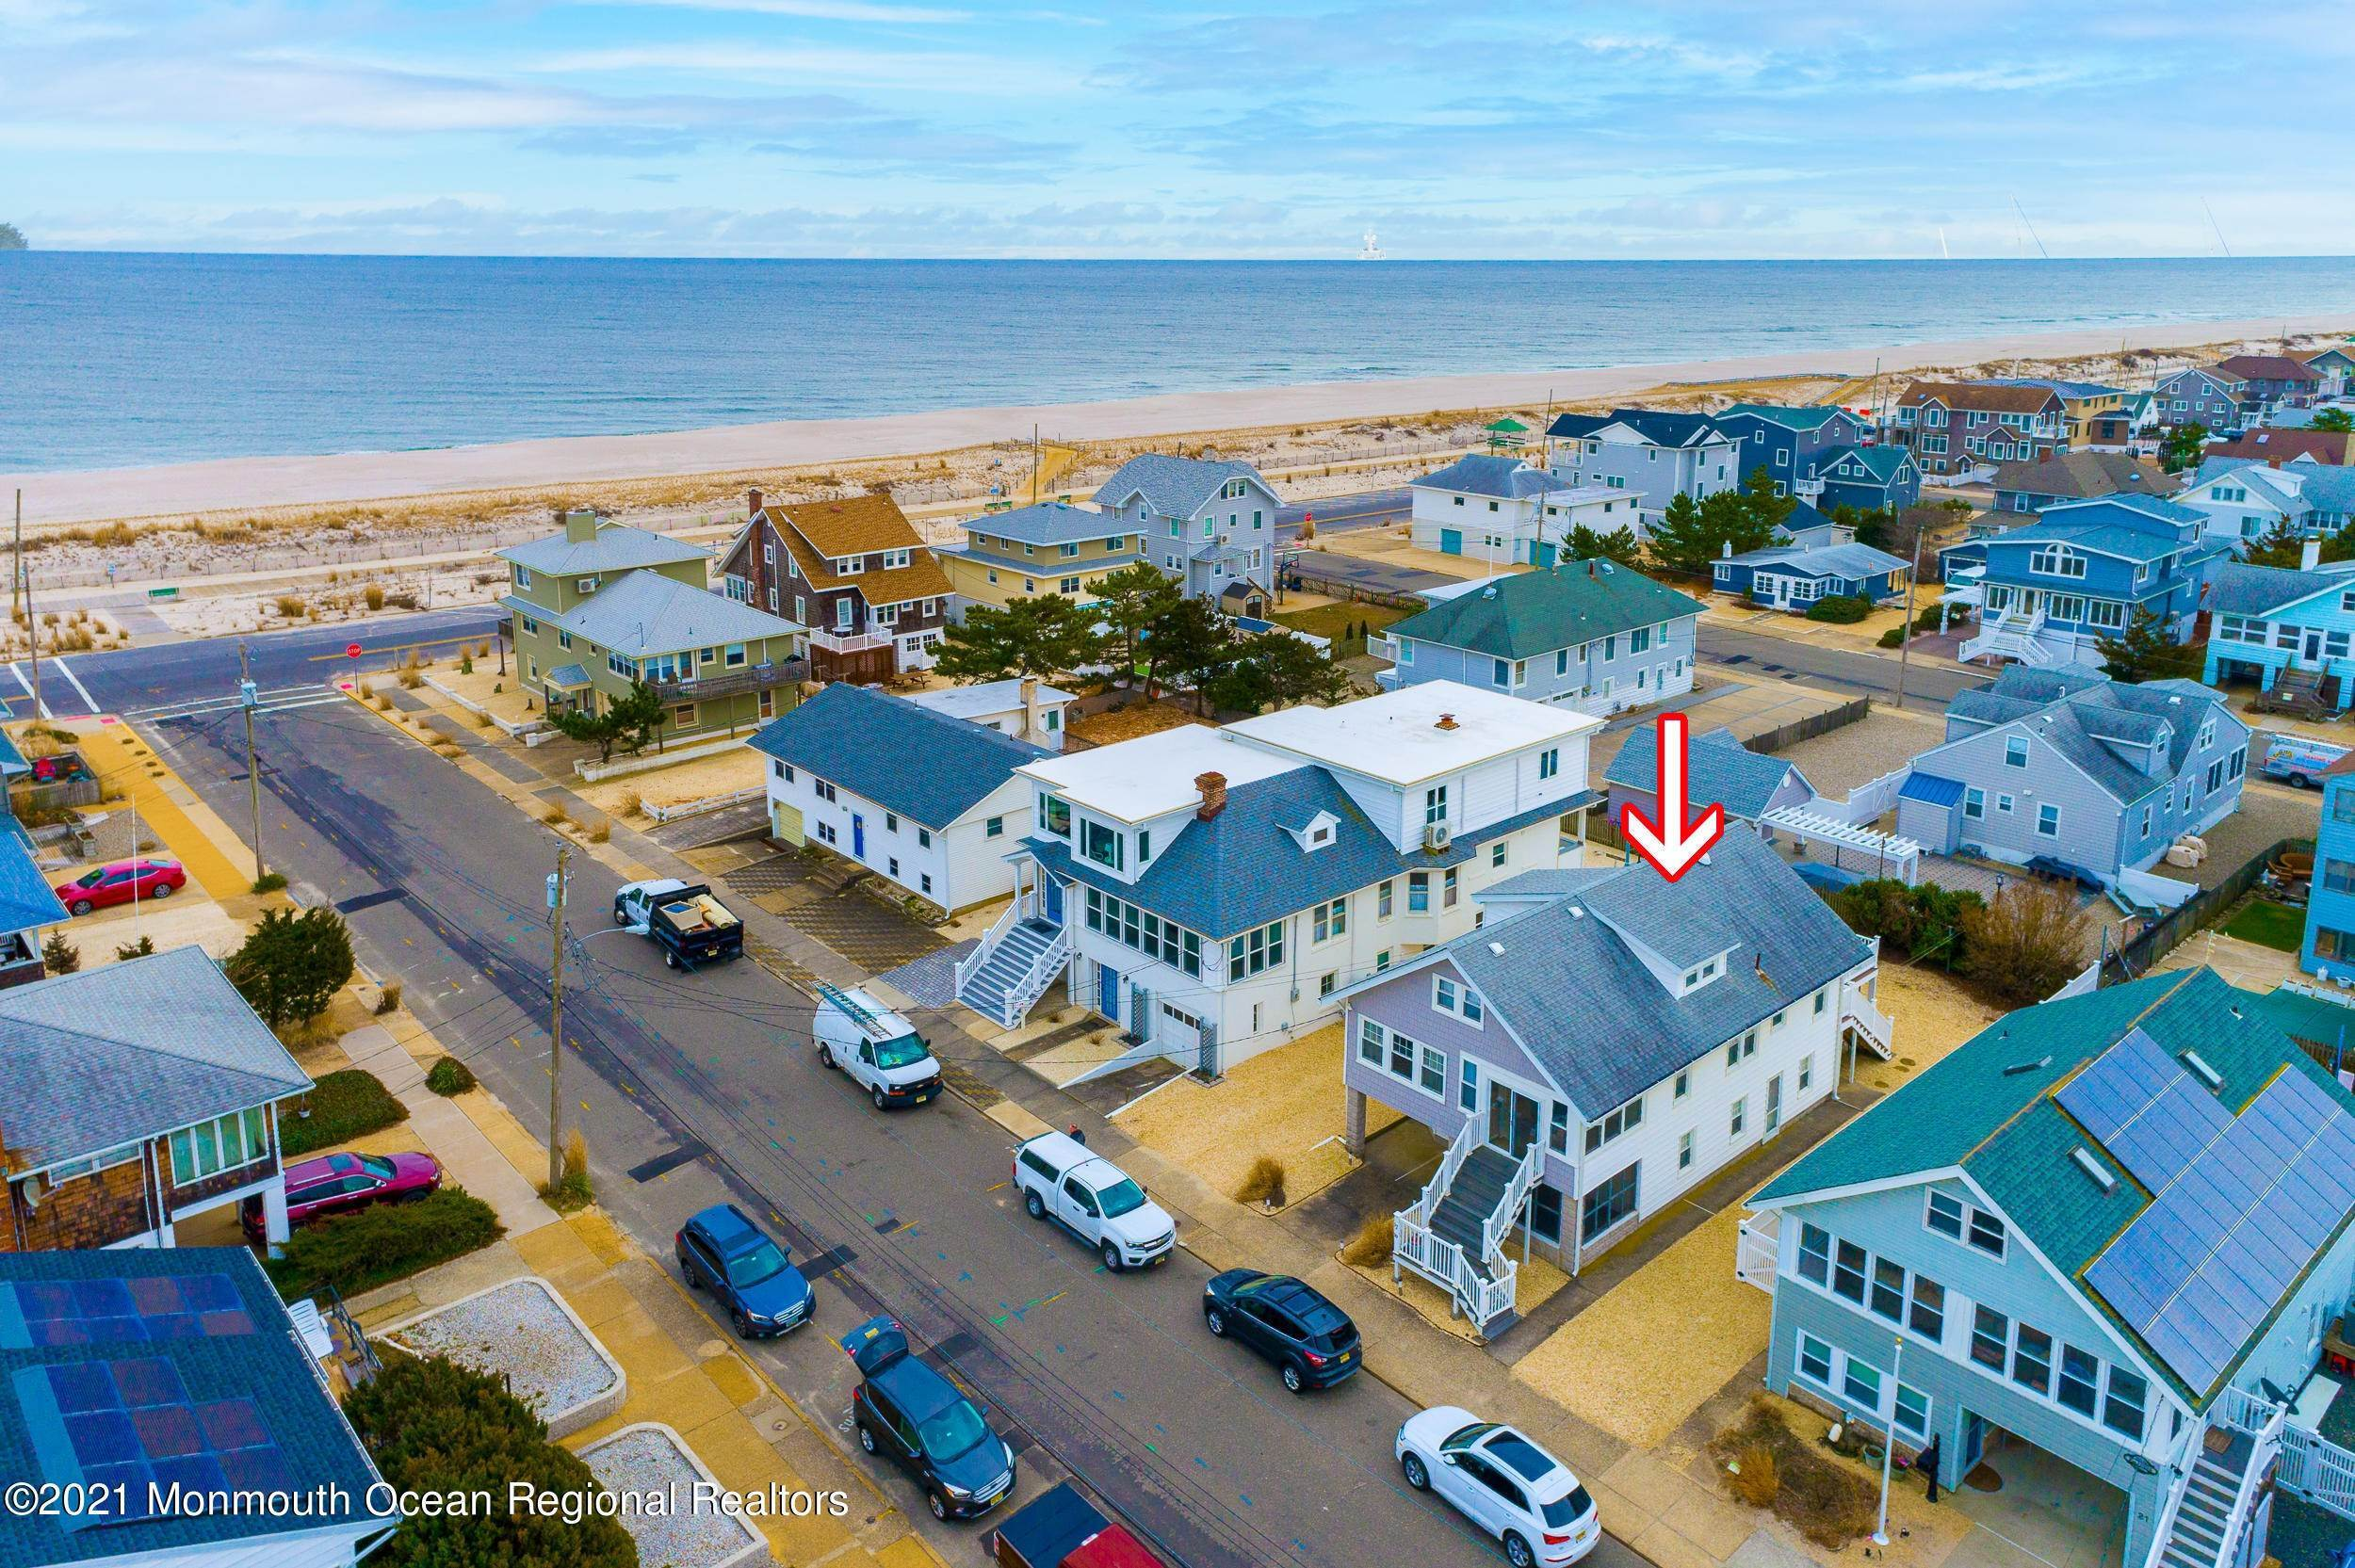 Property for Sale at 17 I Street Seaside Park, New Jersey 08752 United States